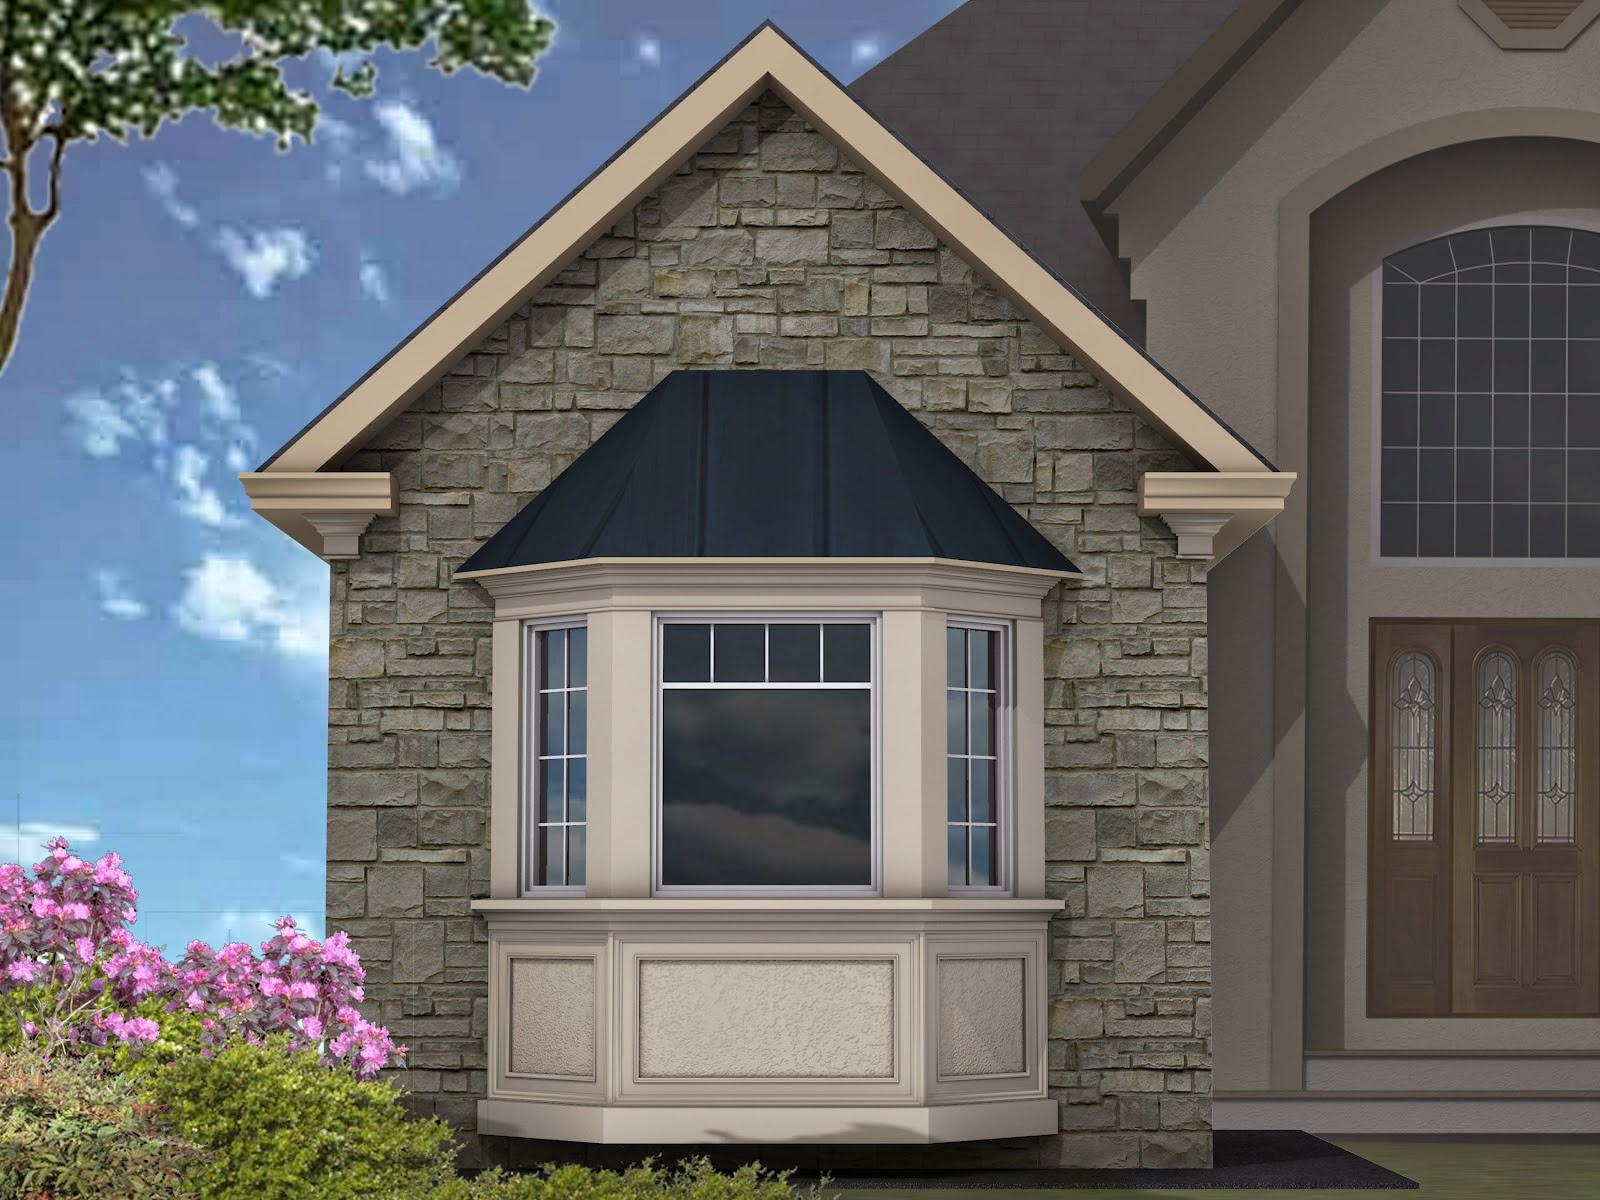 3d model of window exterior design home designs for Exterior 3d model